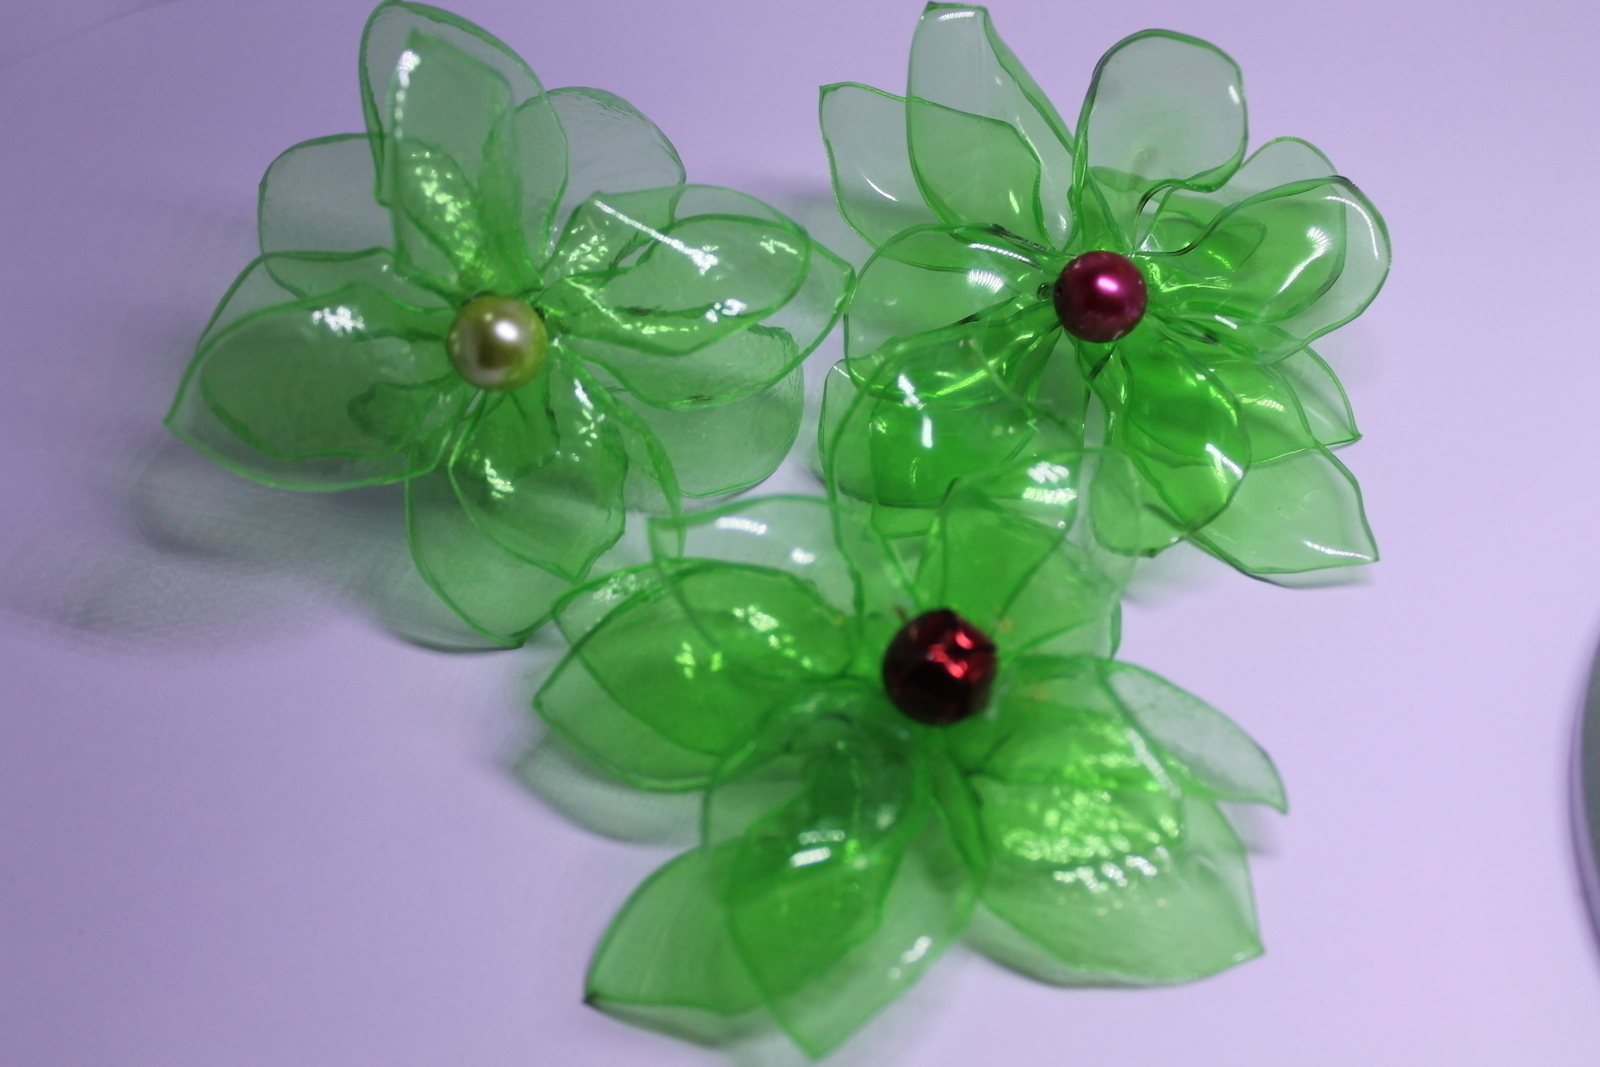 Recycled Plastic Flowers · A Recycled Headband · Art on Cut Out Keep